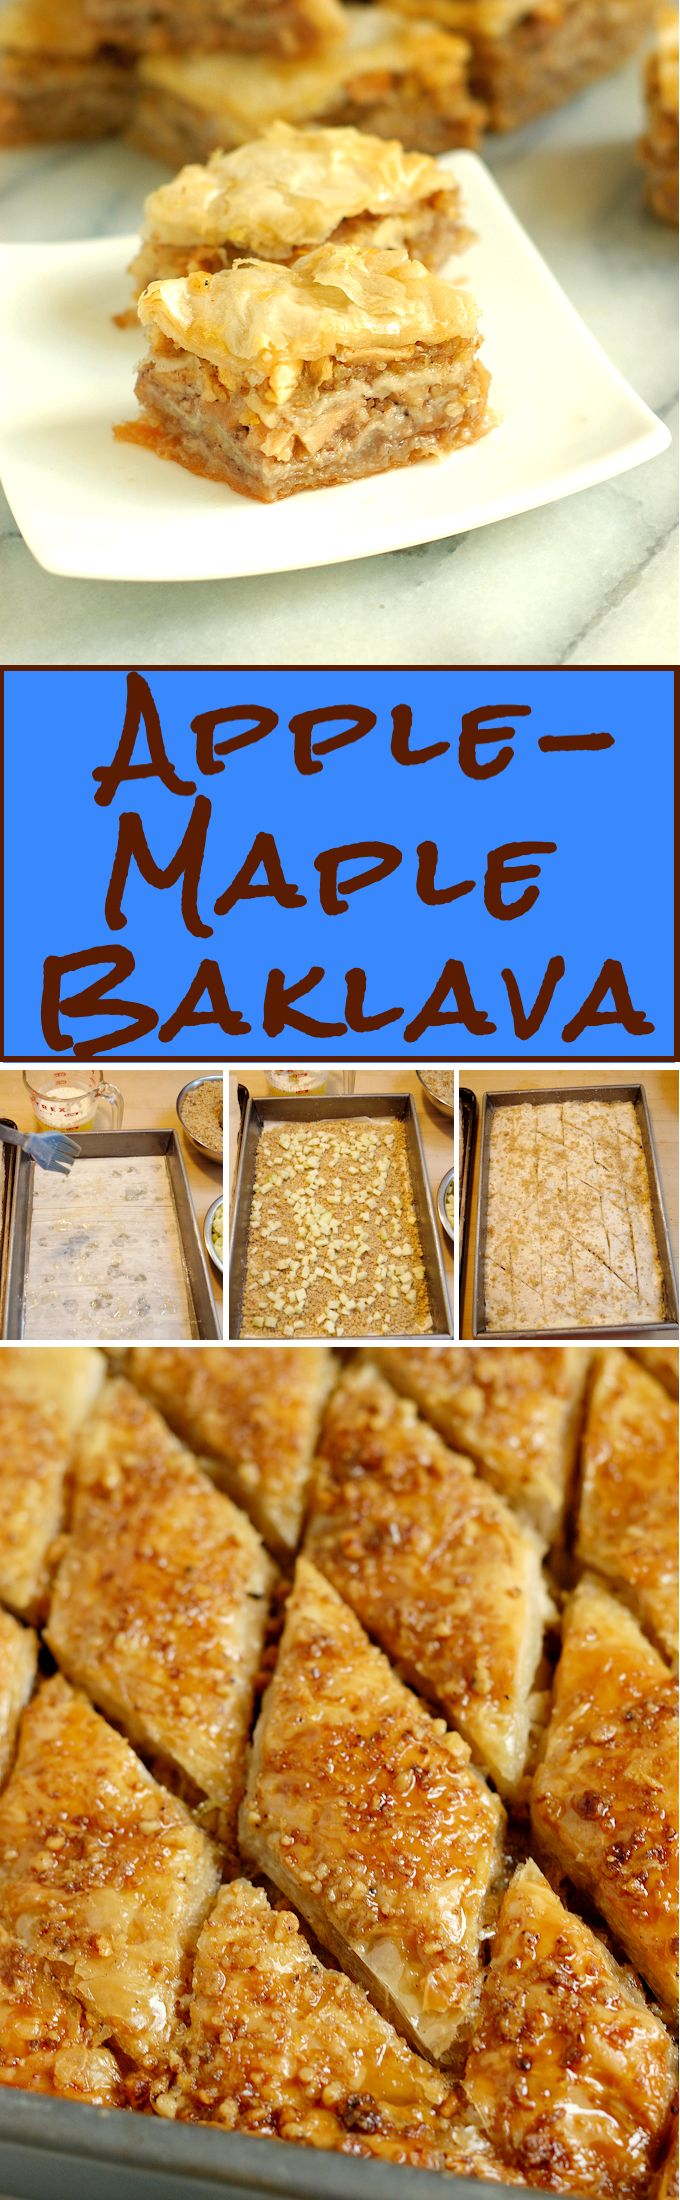 If traditional Baklava and all-American Apple Pie had a baby, it would be Apple Maple Baklava.